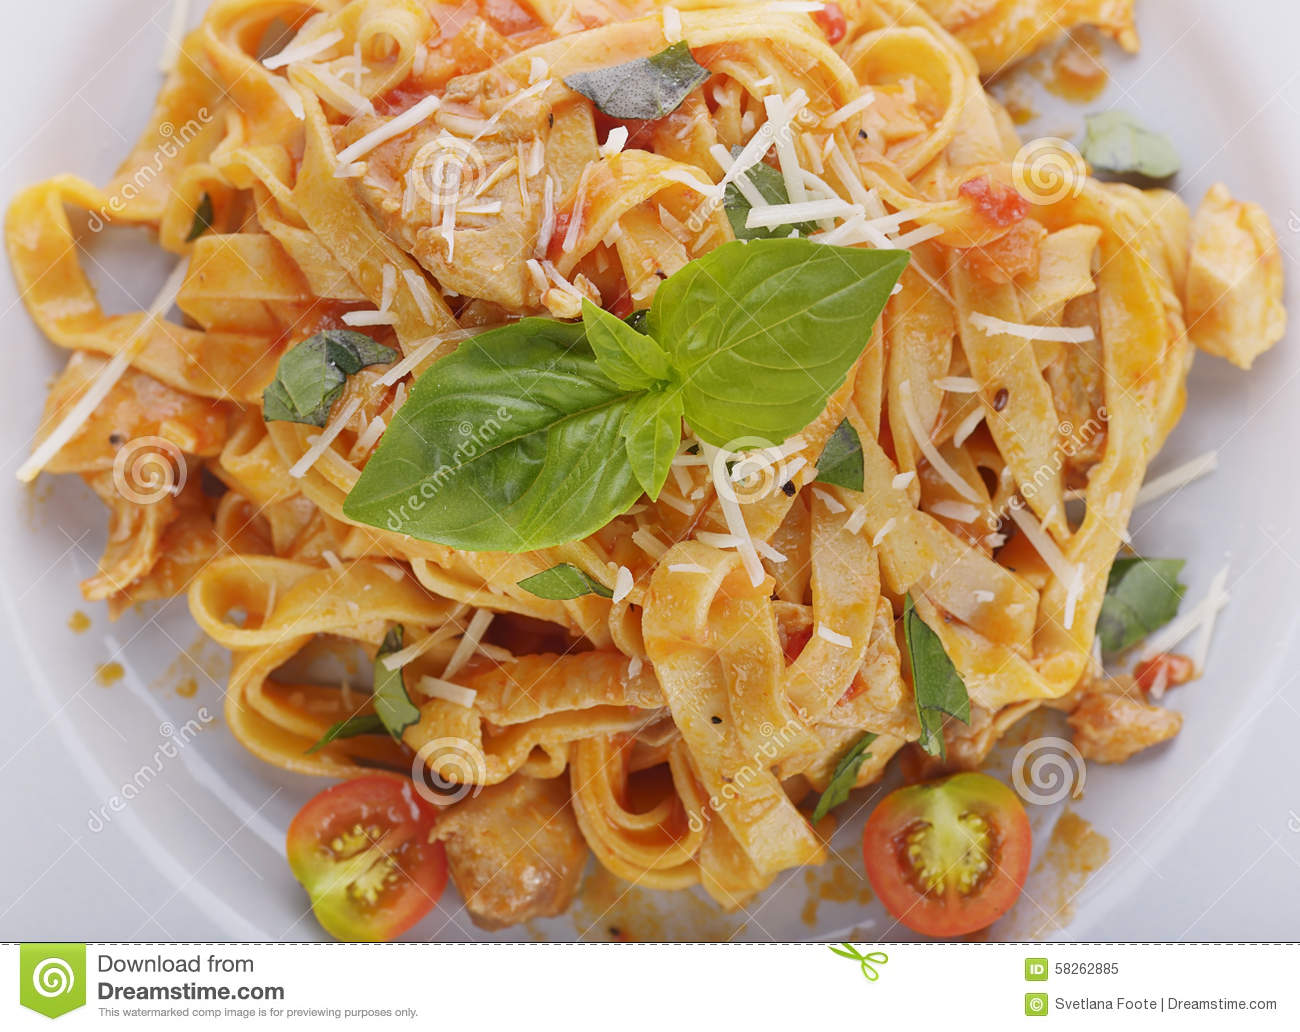 how to eat fettuccine pasta